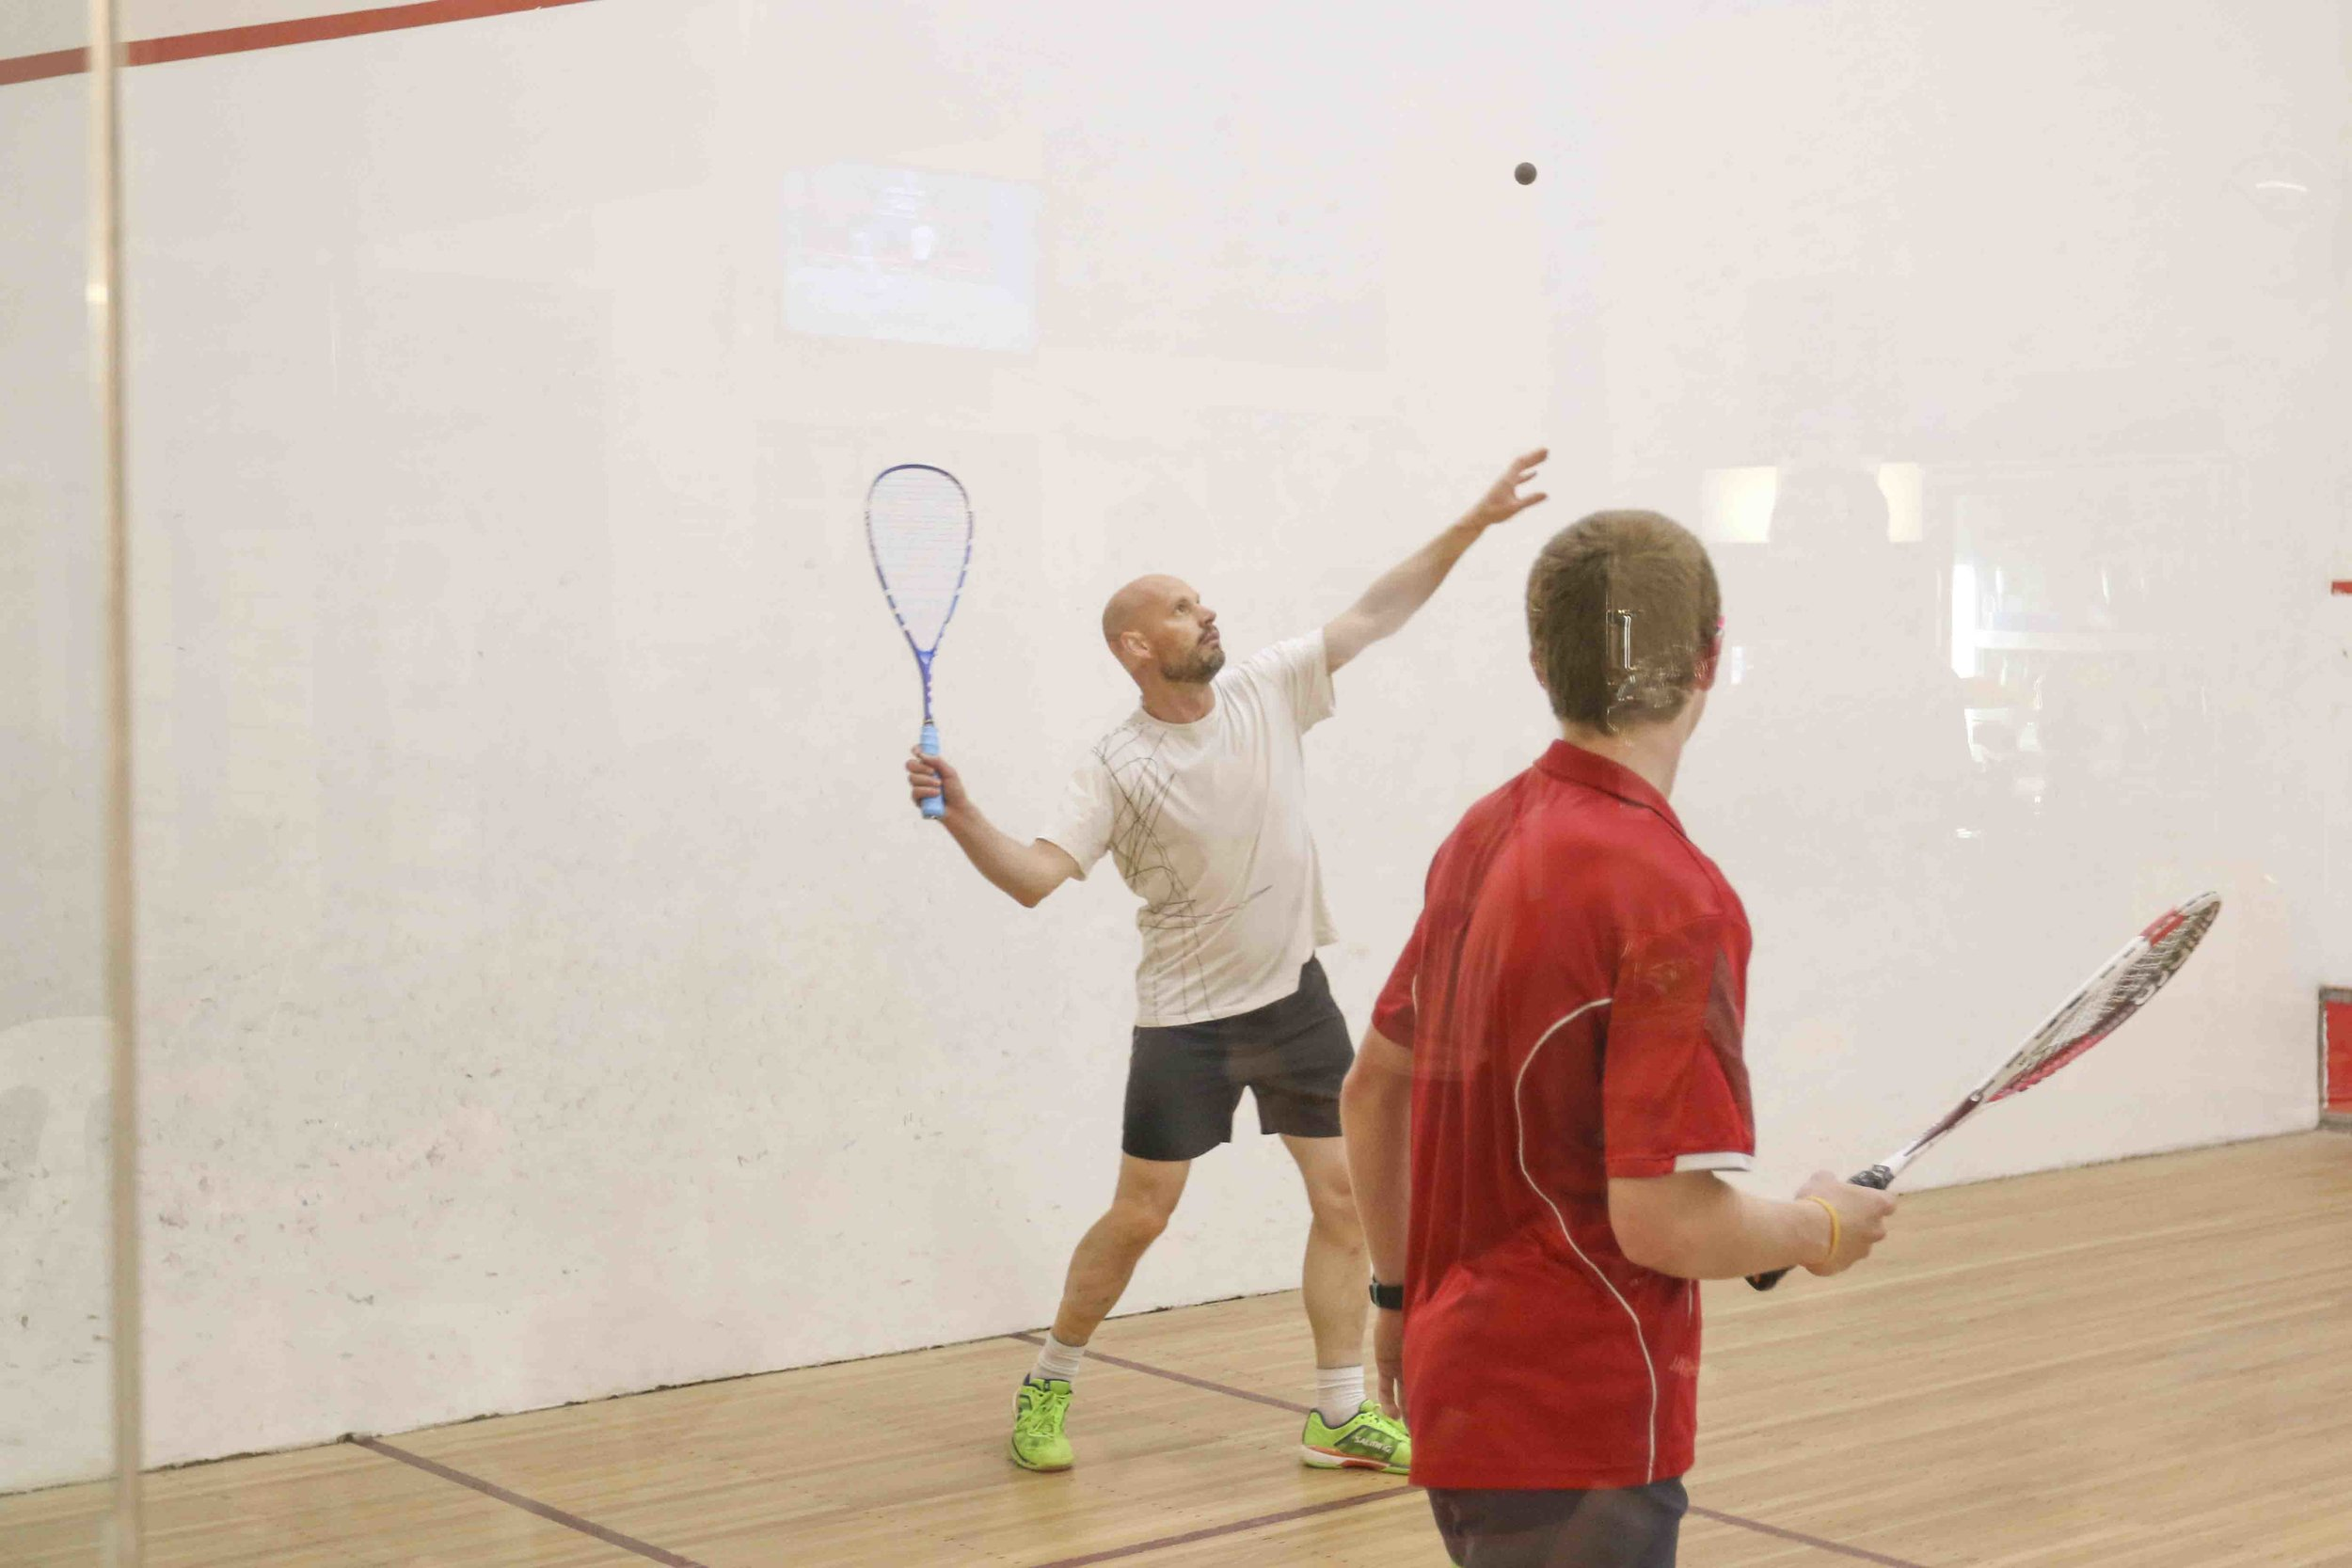 play racket sport bendigo squash club squash serve